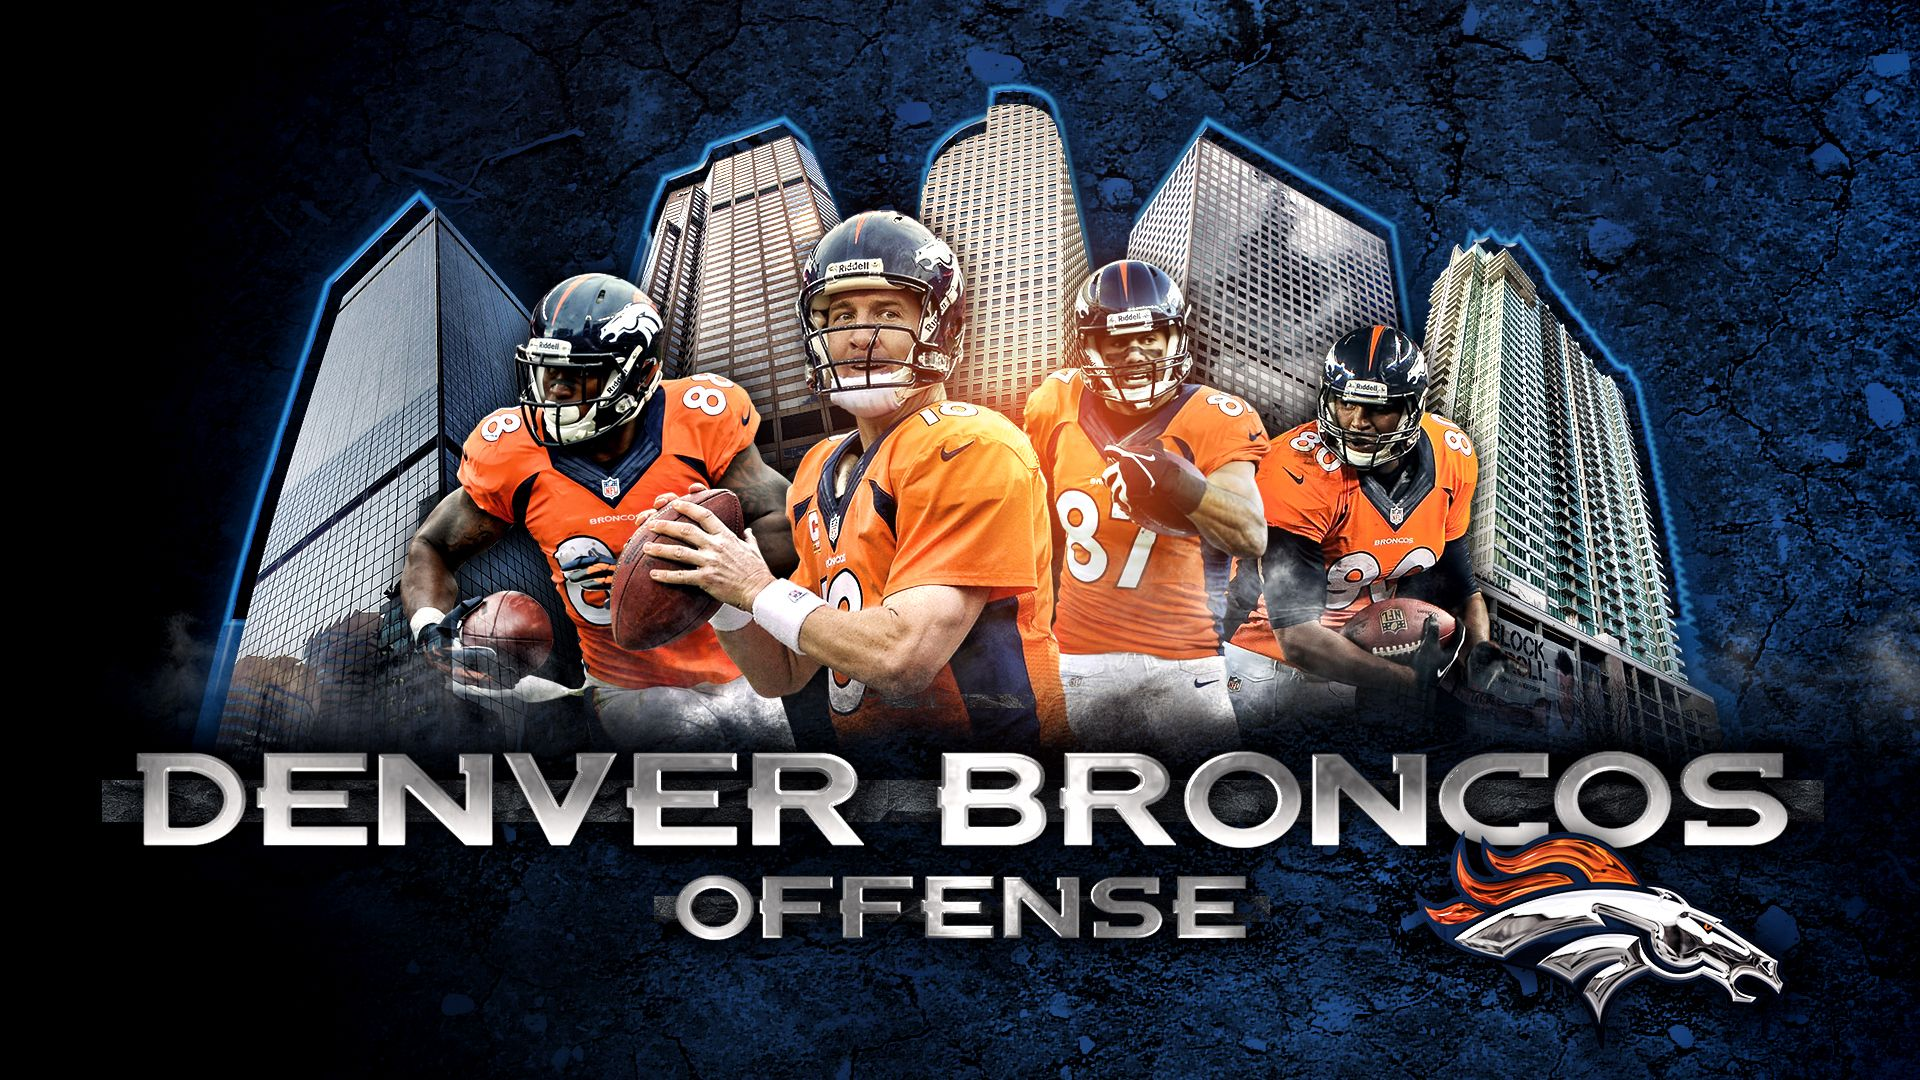 Denver broncos schedule wallpaper denver broncos defensive line denver broncos schedule wallpaper denver broncos defensive line robert ayers sylvester williams voltagebd Images